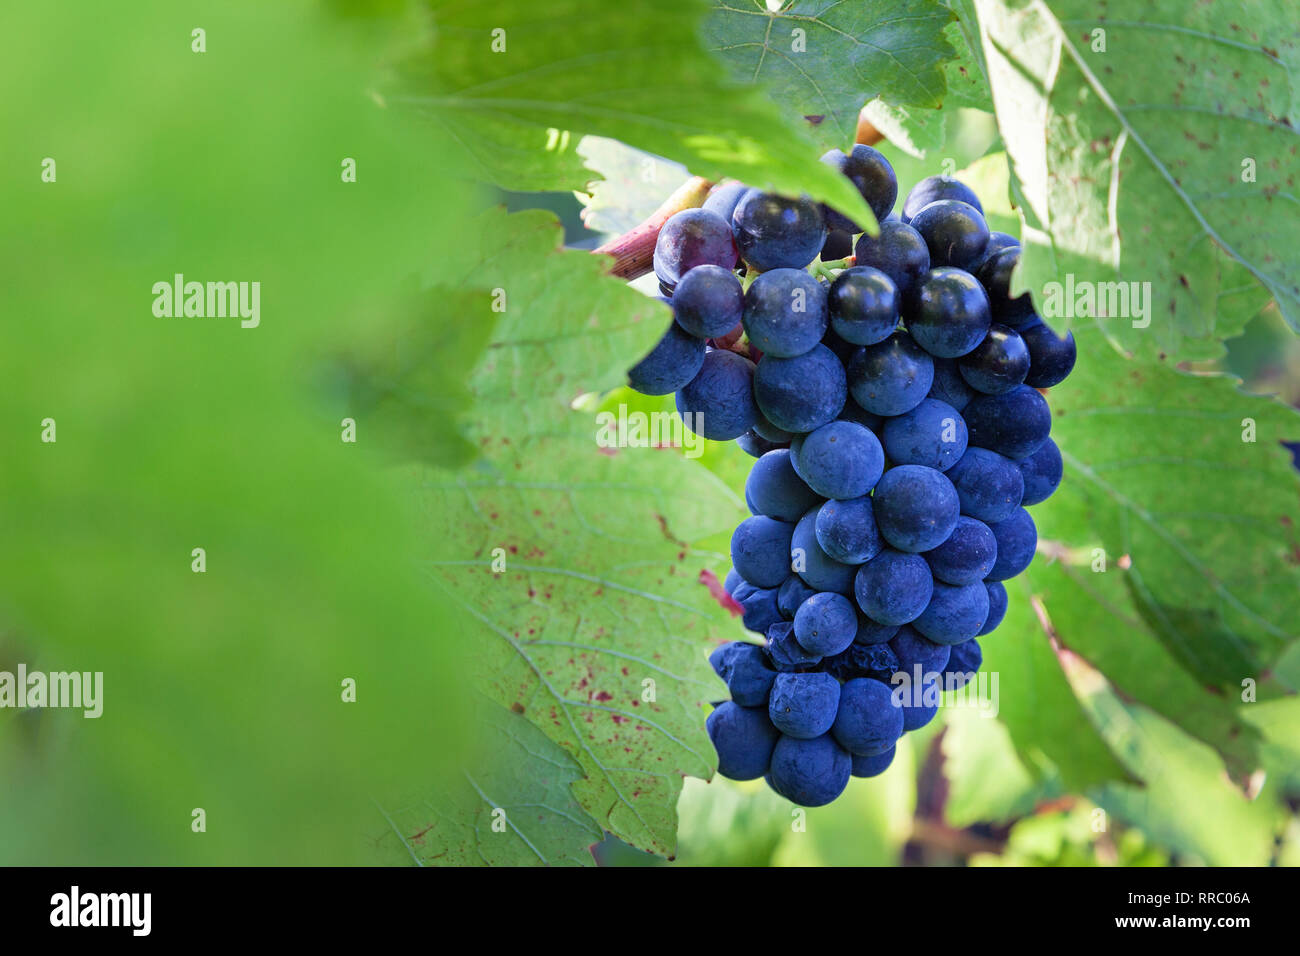 botany, vine, Blauer Portugieser bunch of grapes in the Siefersheimer vineyard, Rhine-Hesse, Germany, Additional-Rights-Clearance-Info-Not-Available Stock Photo